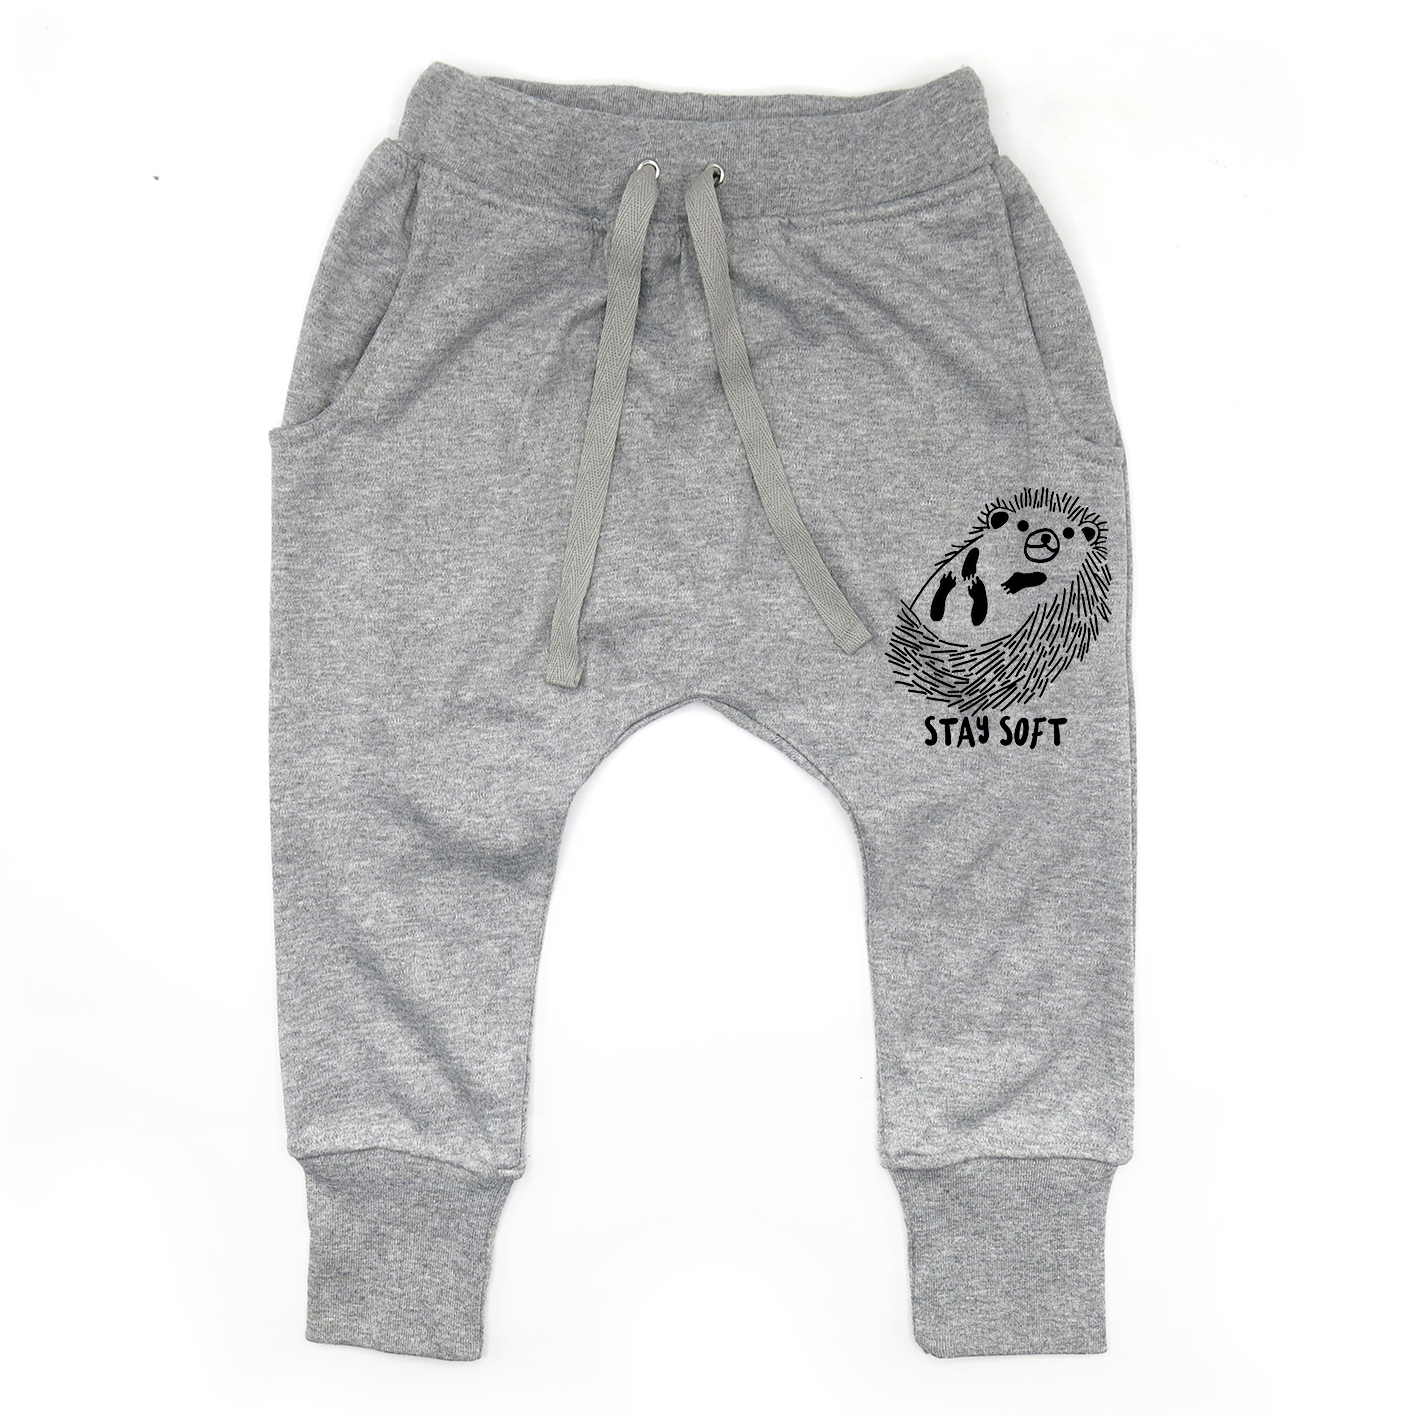 BABY&KIDS LP0582 [C] 0M.-7Y. STAY SOFT SLOUCH PANTS